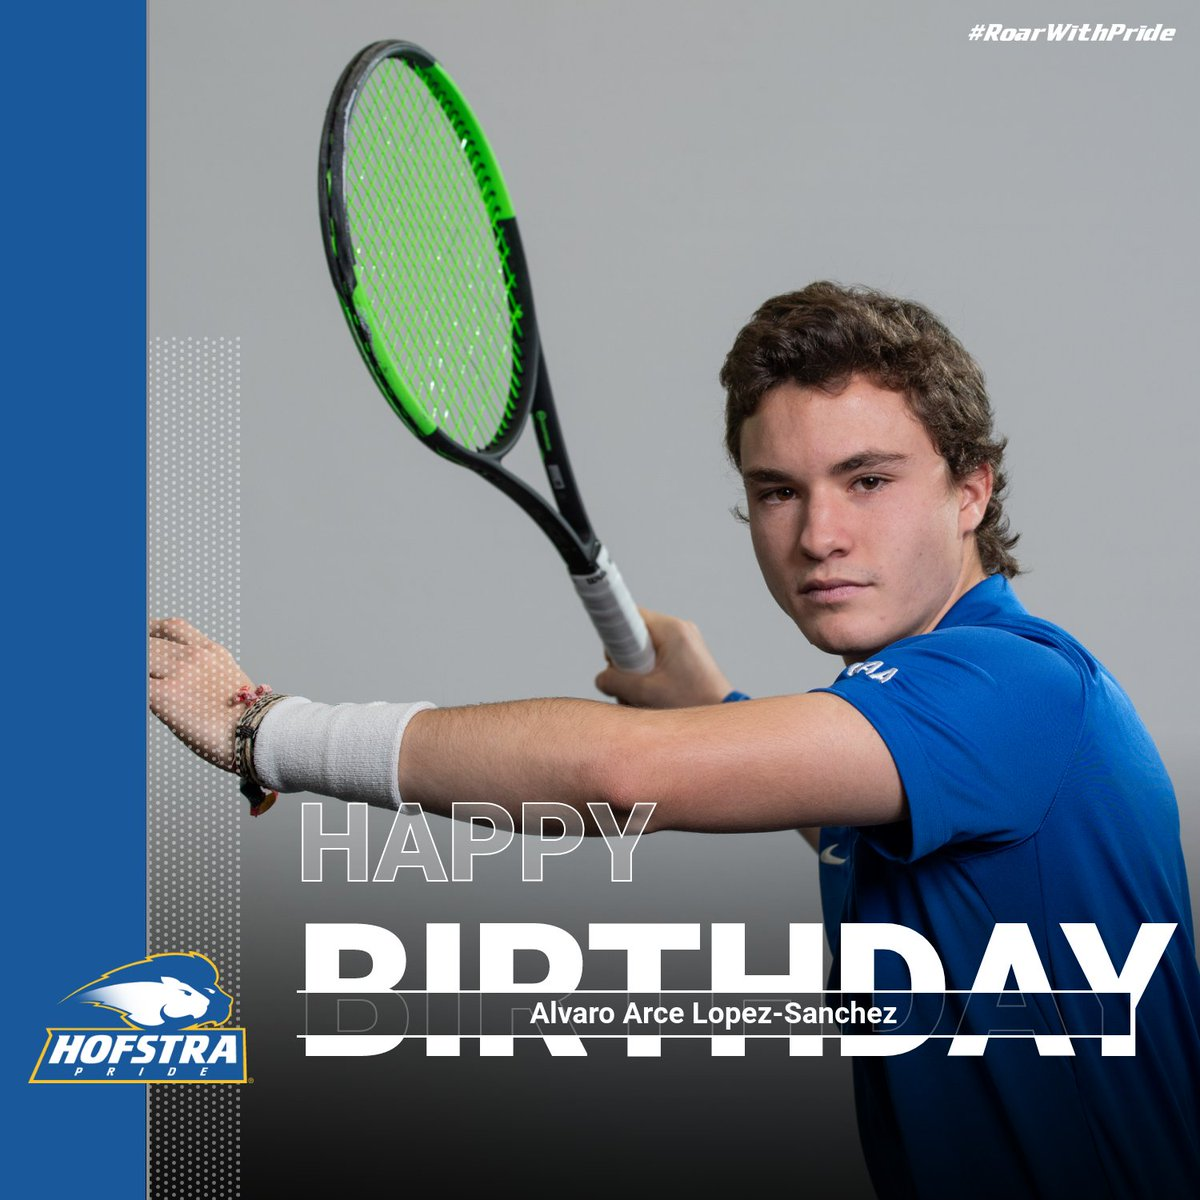 A pair to celebrate as we send Happy Birthday wishes to Alvaro Arce Lopez-Sanchez and assistant coach @d_reinharz (1 day late) 🎂🎈🎈❗ #Hofstra #RoarWithPride https://t.co/Bs0mQUzDu8